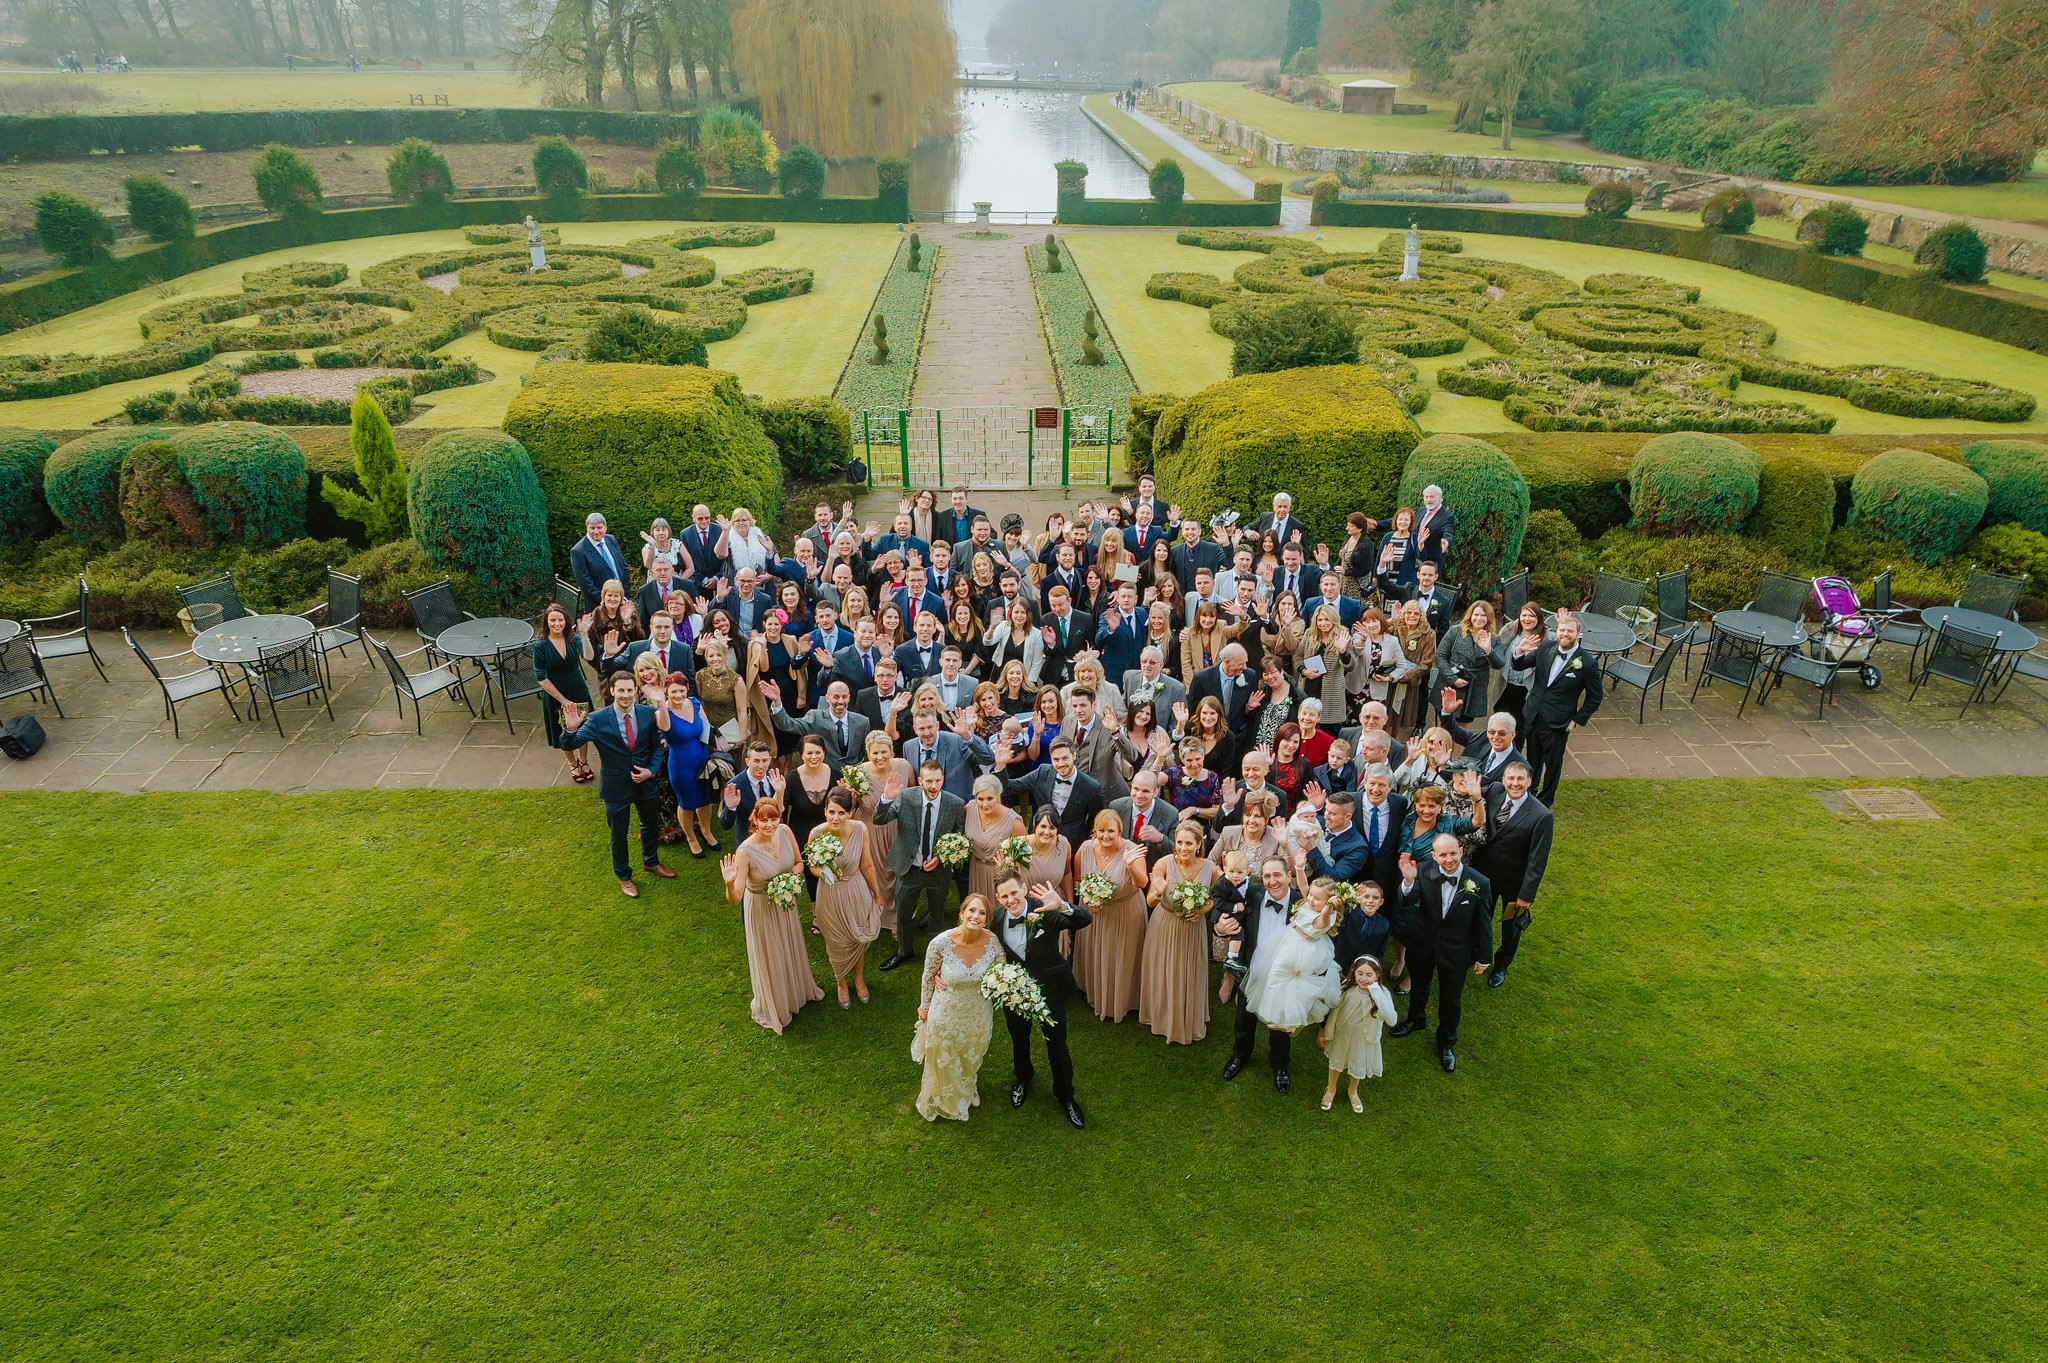 coombe abbey wedding coventry 60 - Coombe Abbey wedding in Coventry, Warwickshire - Sam + Matt